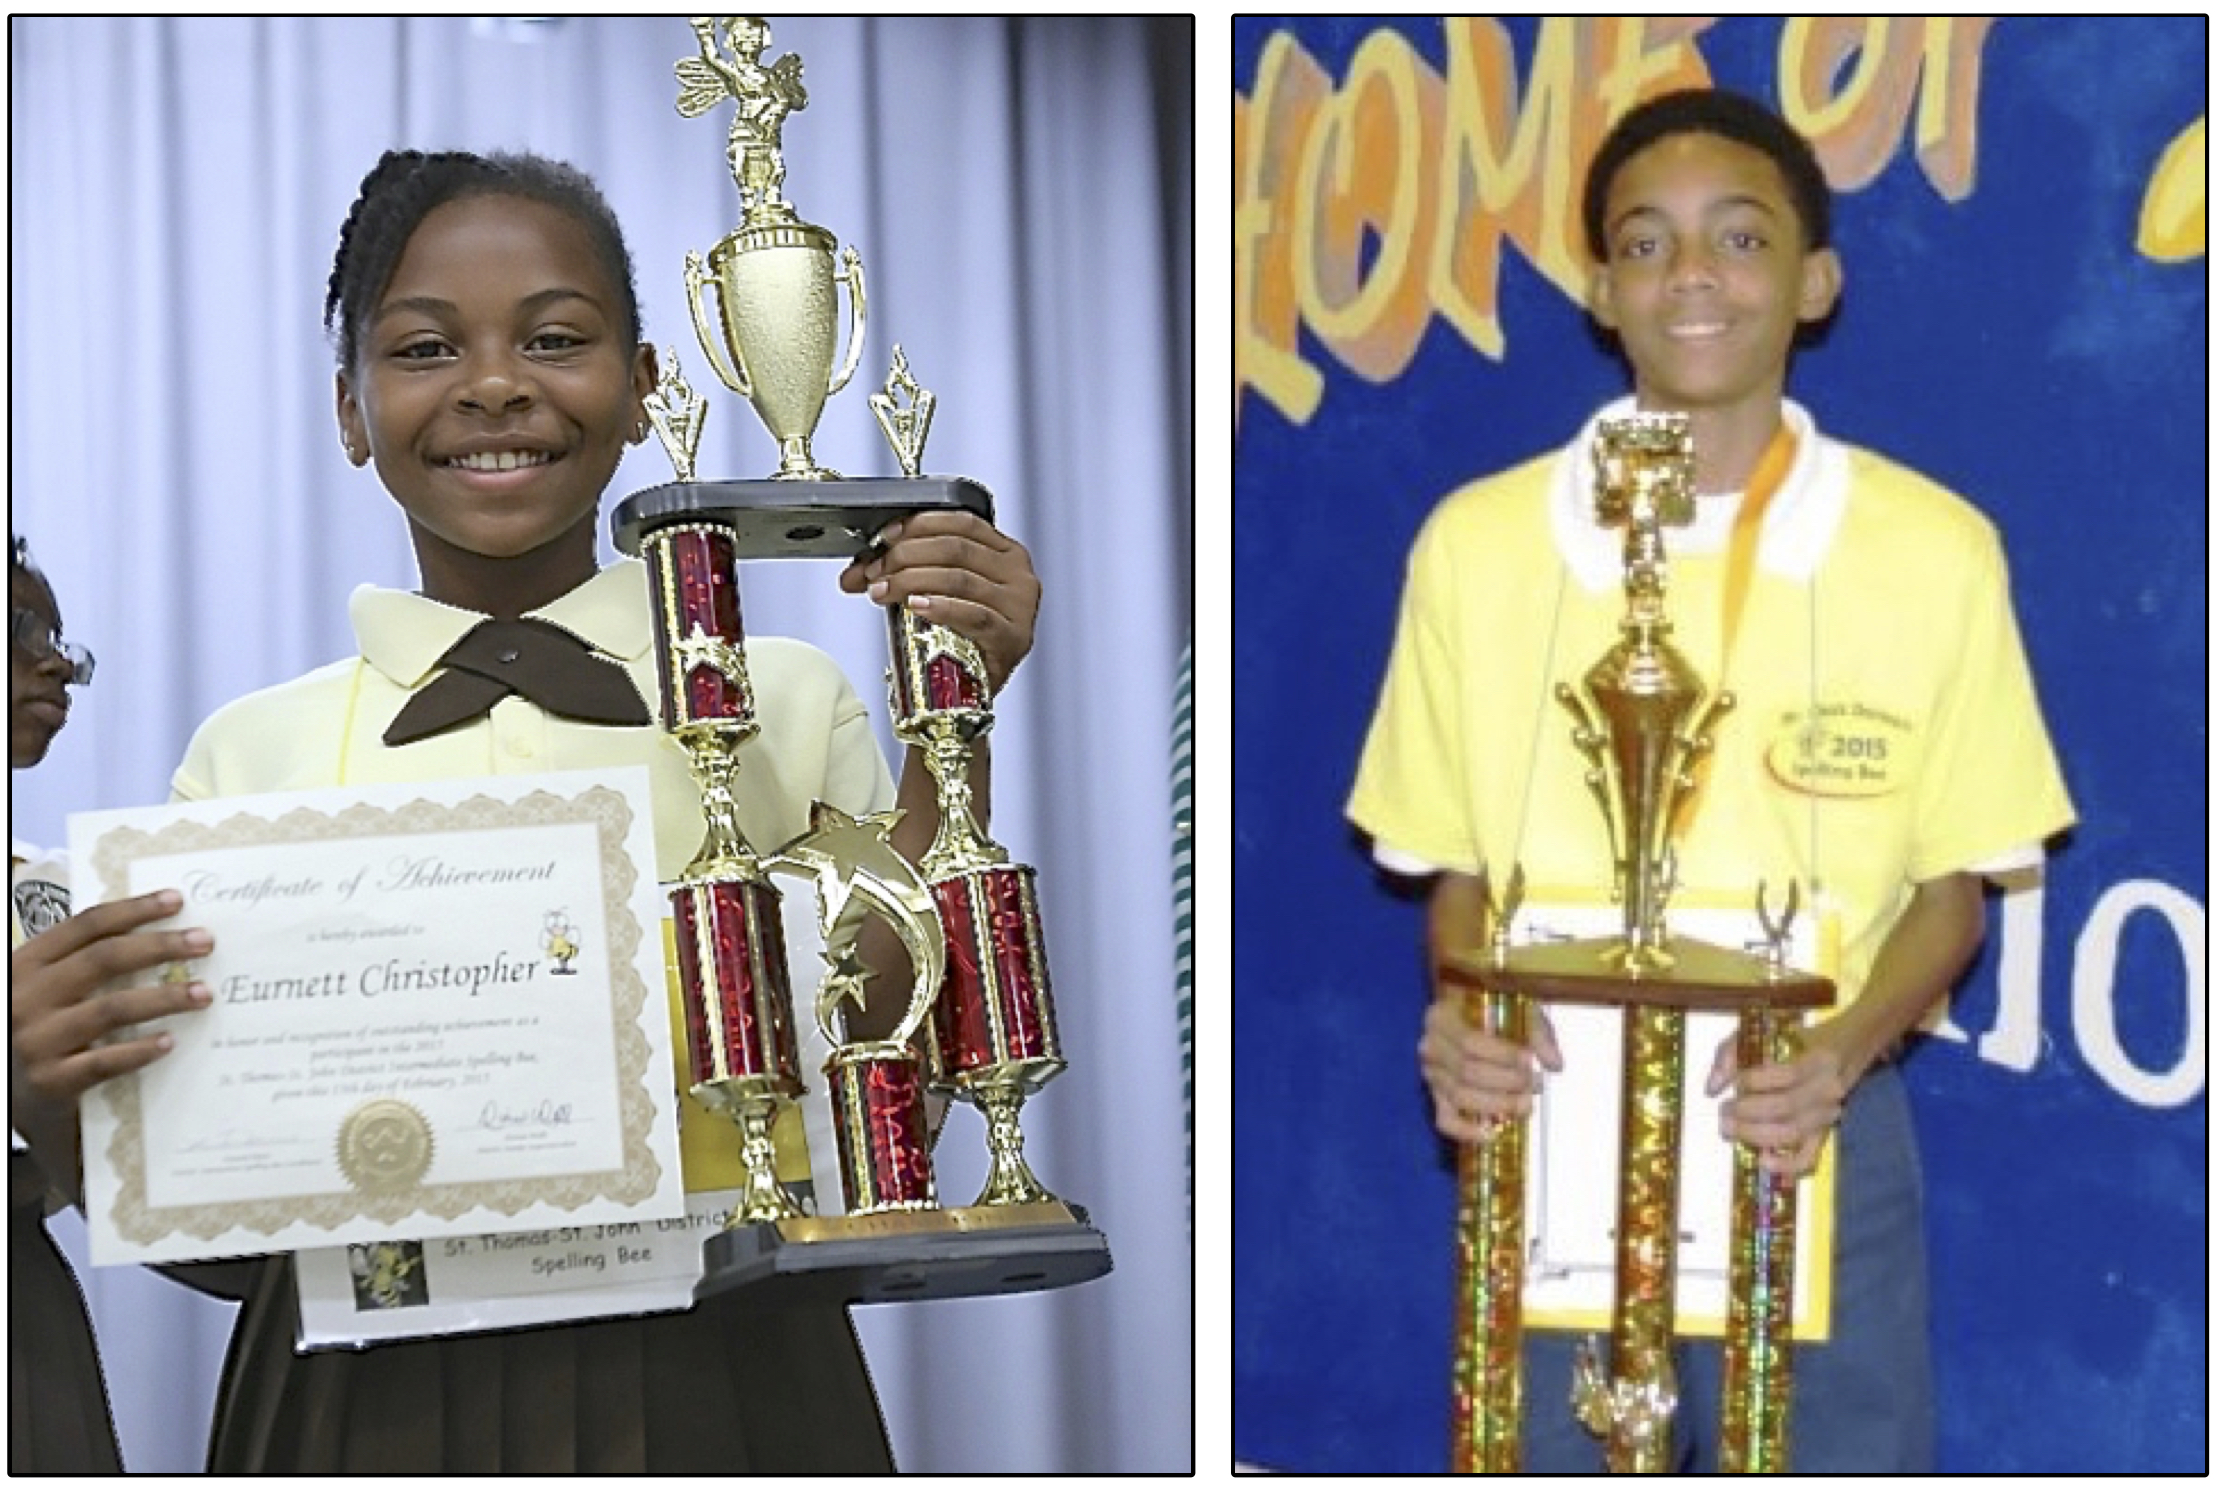 Eurnett Christopher, left, and Khaien Donawa hoist their trophies won in Friday's district spelling bees.